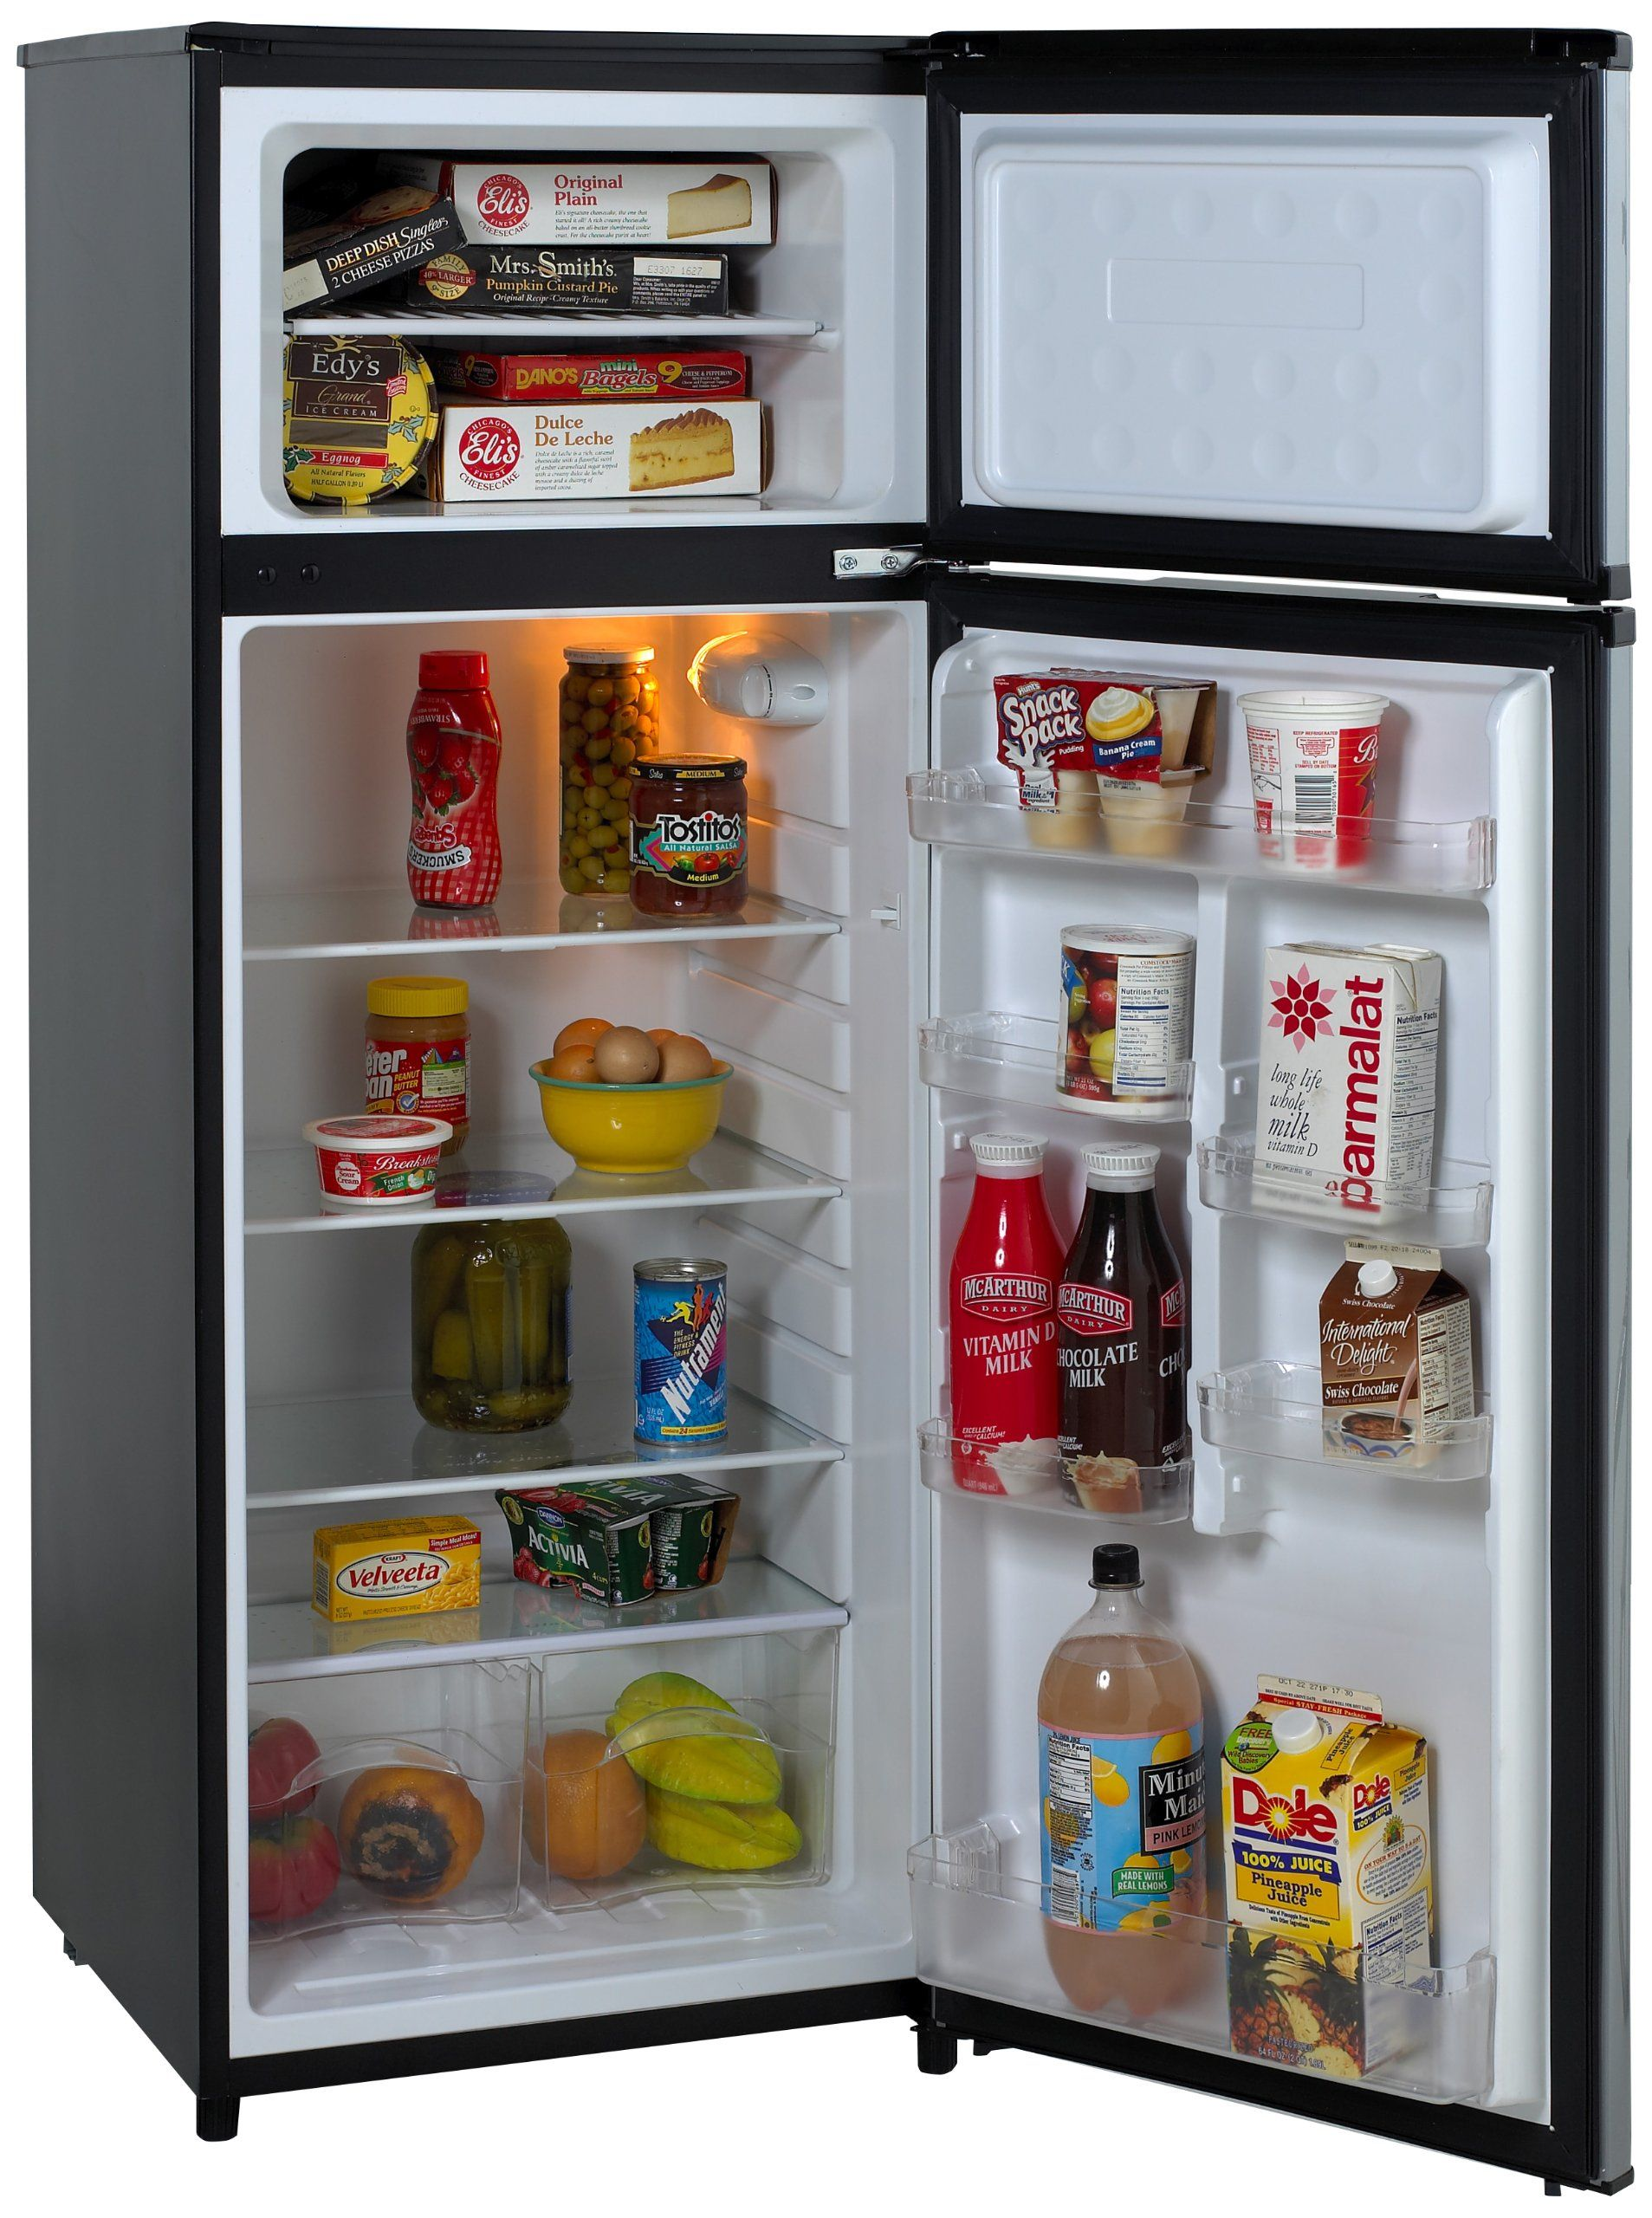 Are You Living In Small Space Need A Second Refrigerator For Guest Use No Need To Worry Apartment Size Refrigerator Apartment Refrigerator Small Refrigerator